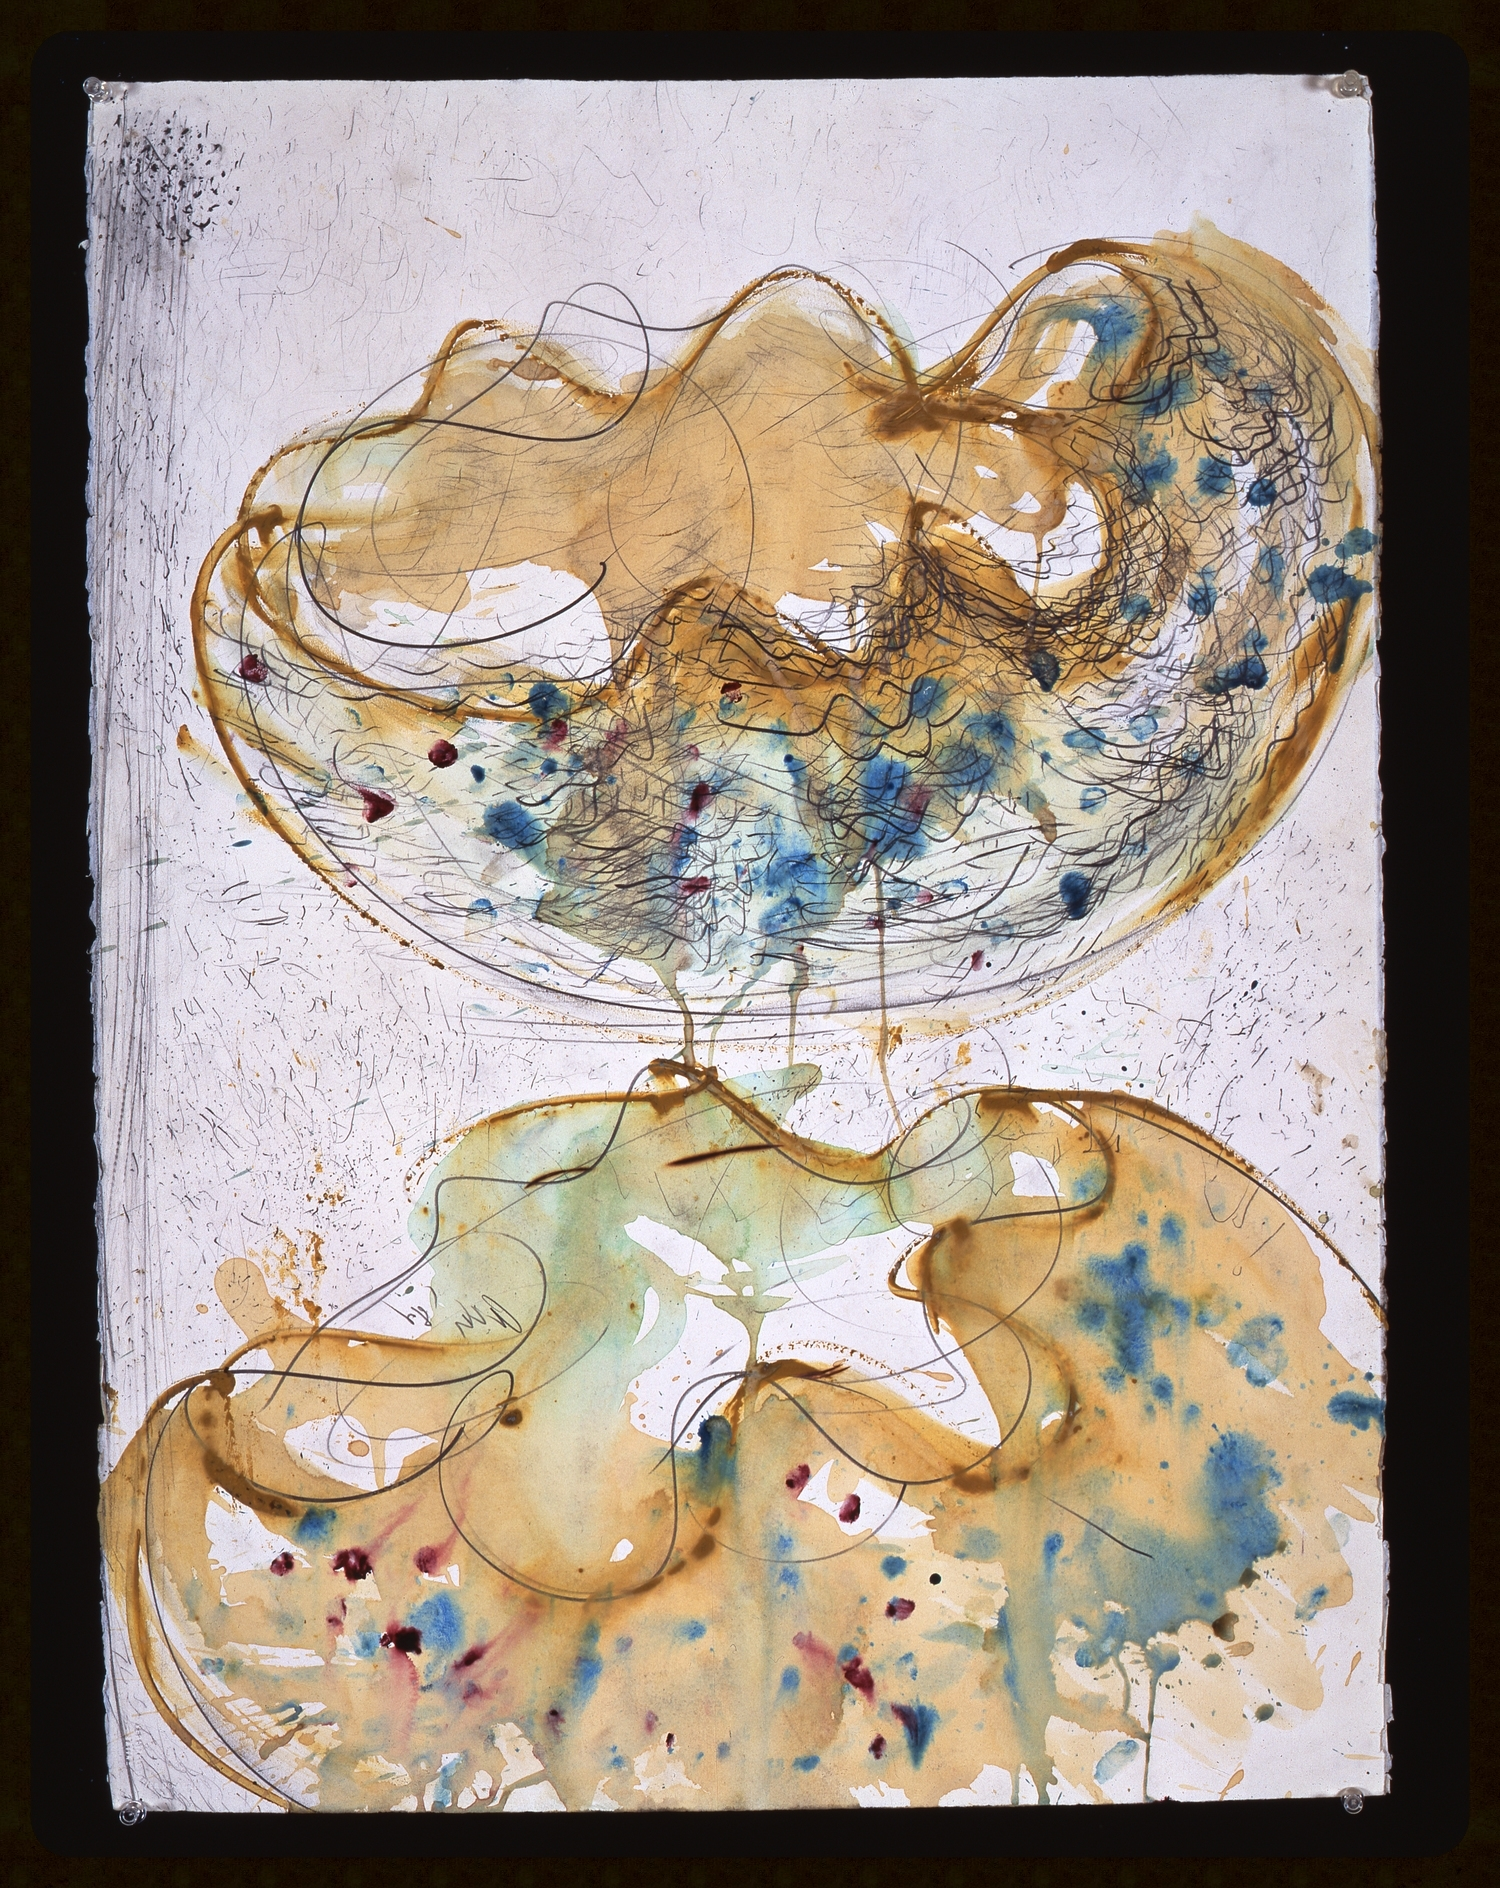 Dale Chihuly, Macchia Drawing #14,  (1982, charcoal, watercolor and graphite on paper, 30 x 22 inches), DC.83